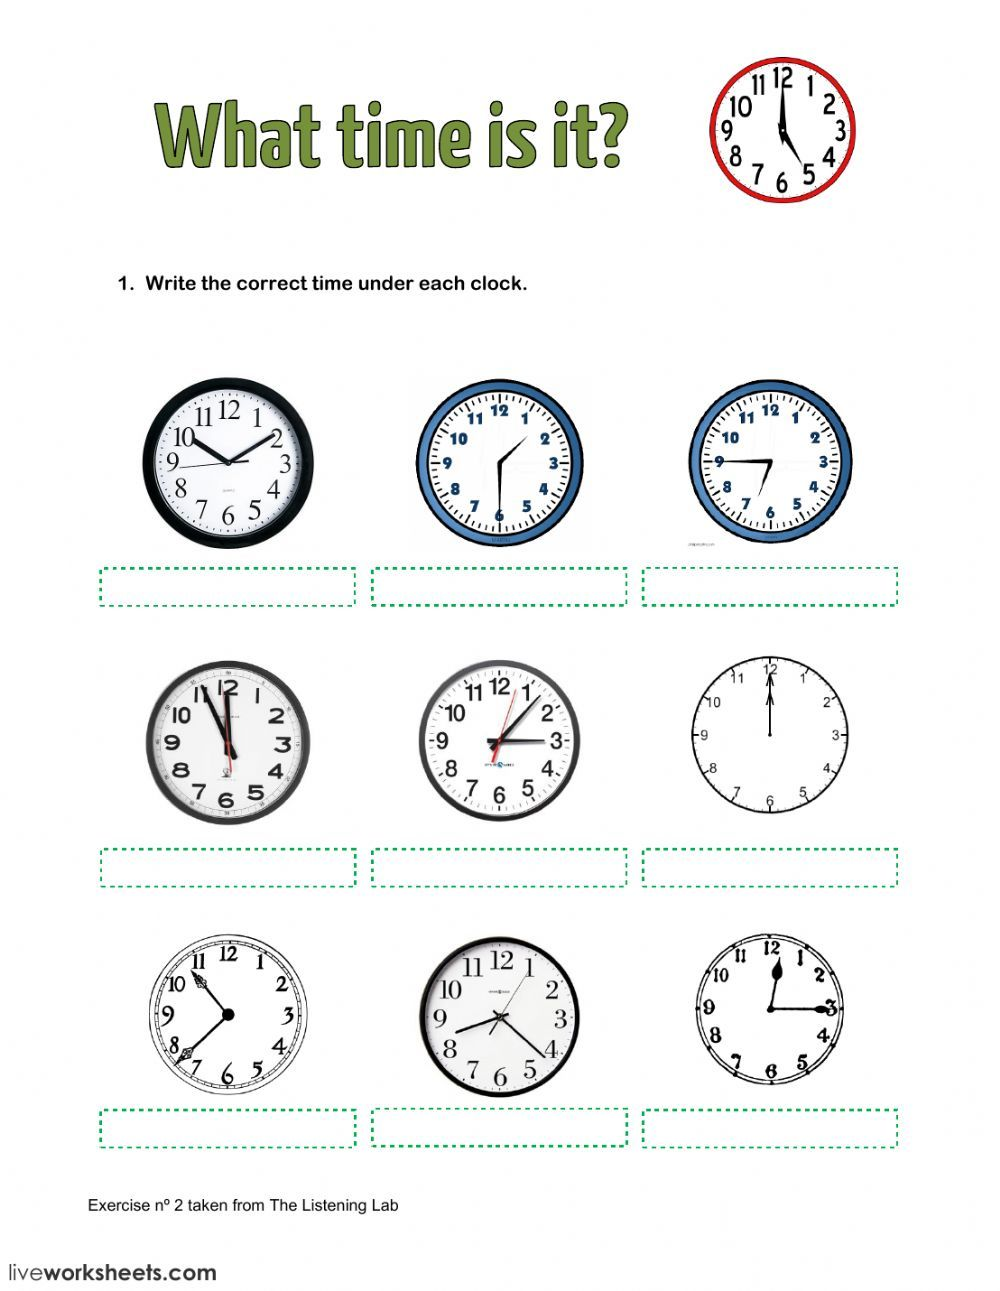 Telling The Time Interactive And Downloadable Worksheet You Can Do The Exercises Online Or Download The Time Worksheets Telling The Time Exercises Worksheets